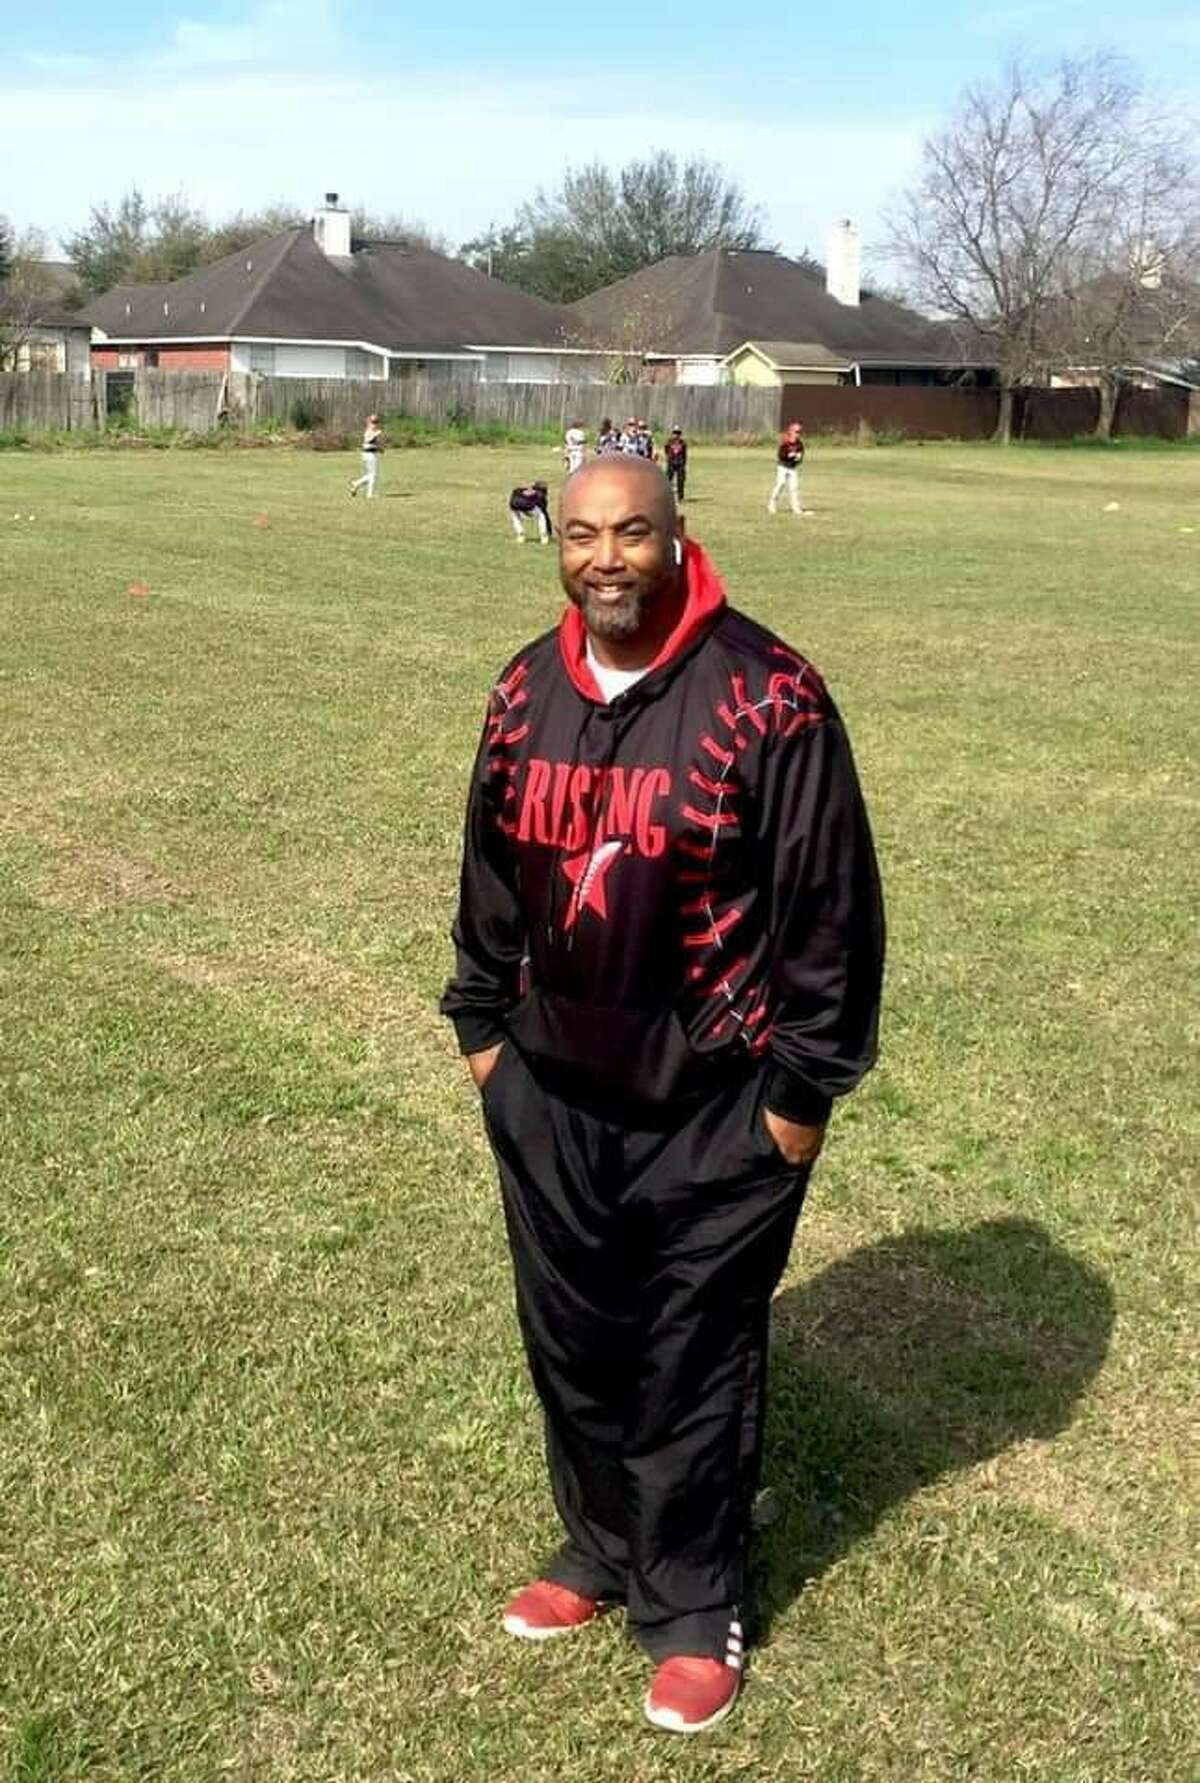 Willie Ansley is one of the best athletes to come through Plainview and dominated in baseball, football and basketball during the later 1980s.